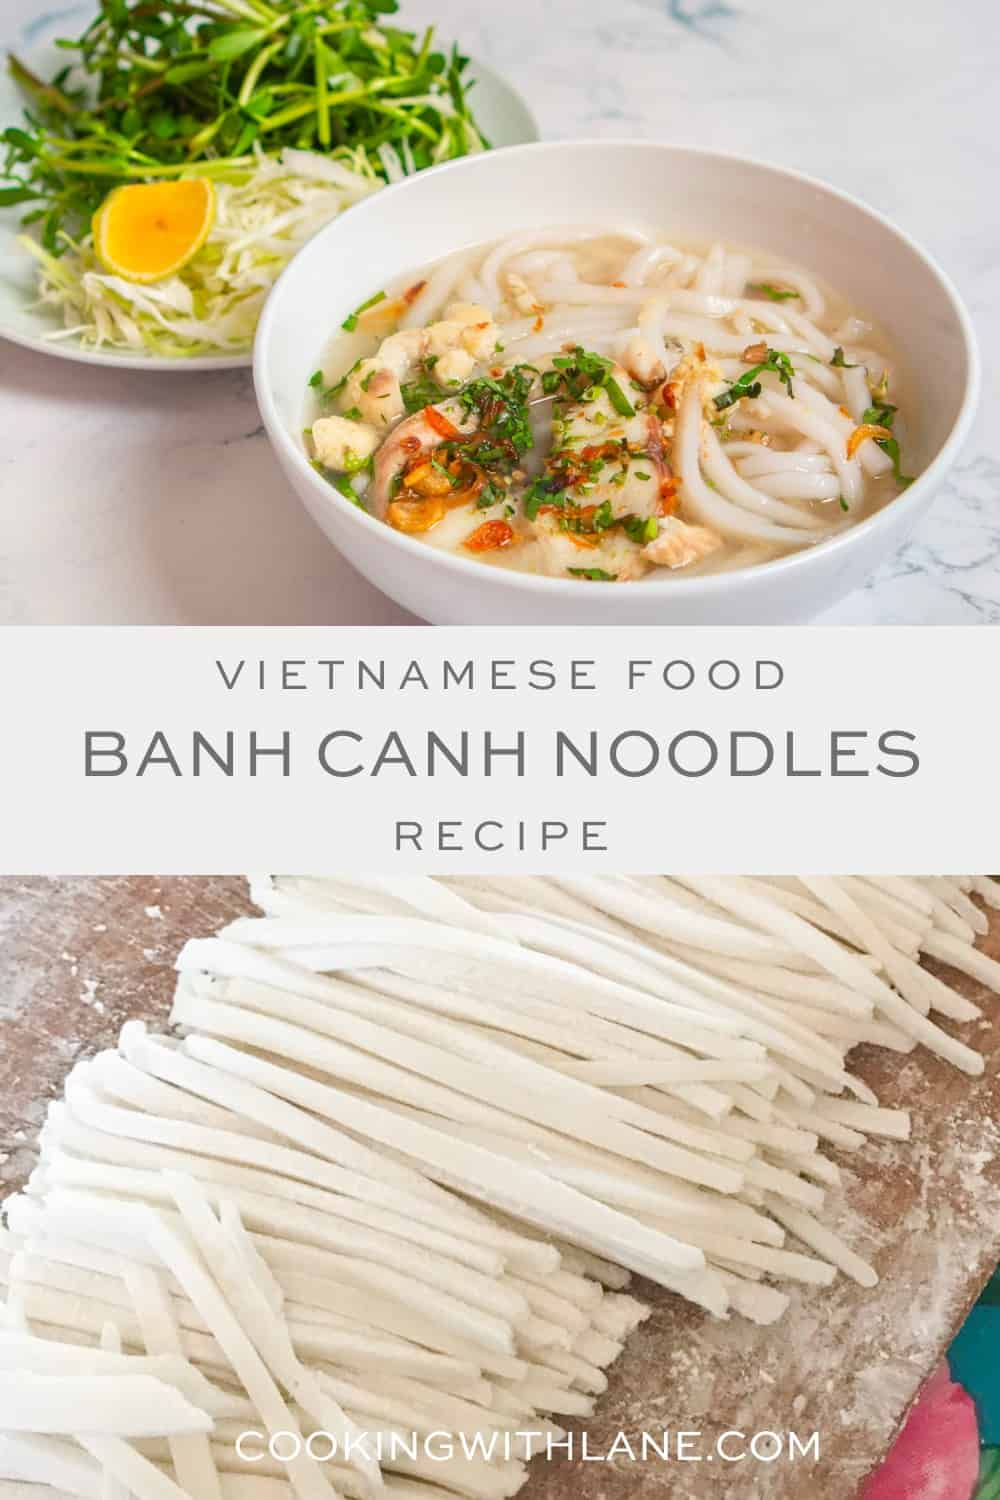 Vietnamese banh can recipe with homemade noodles